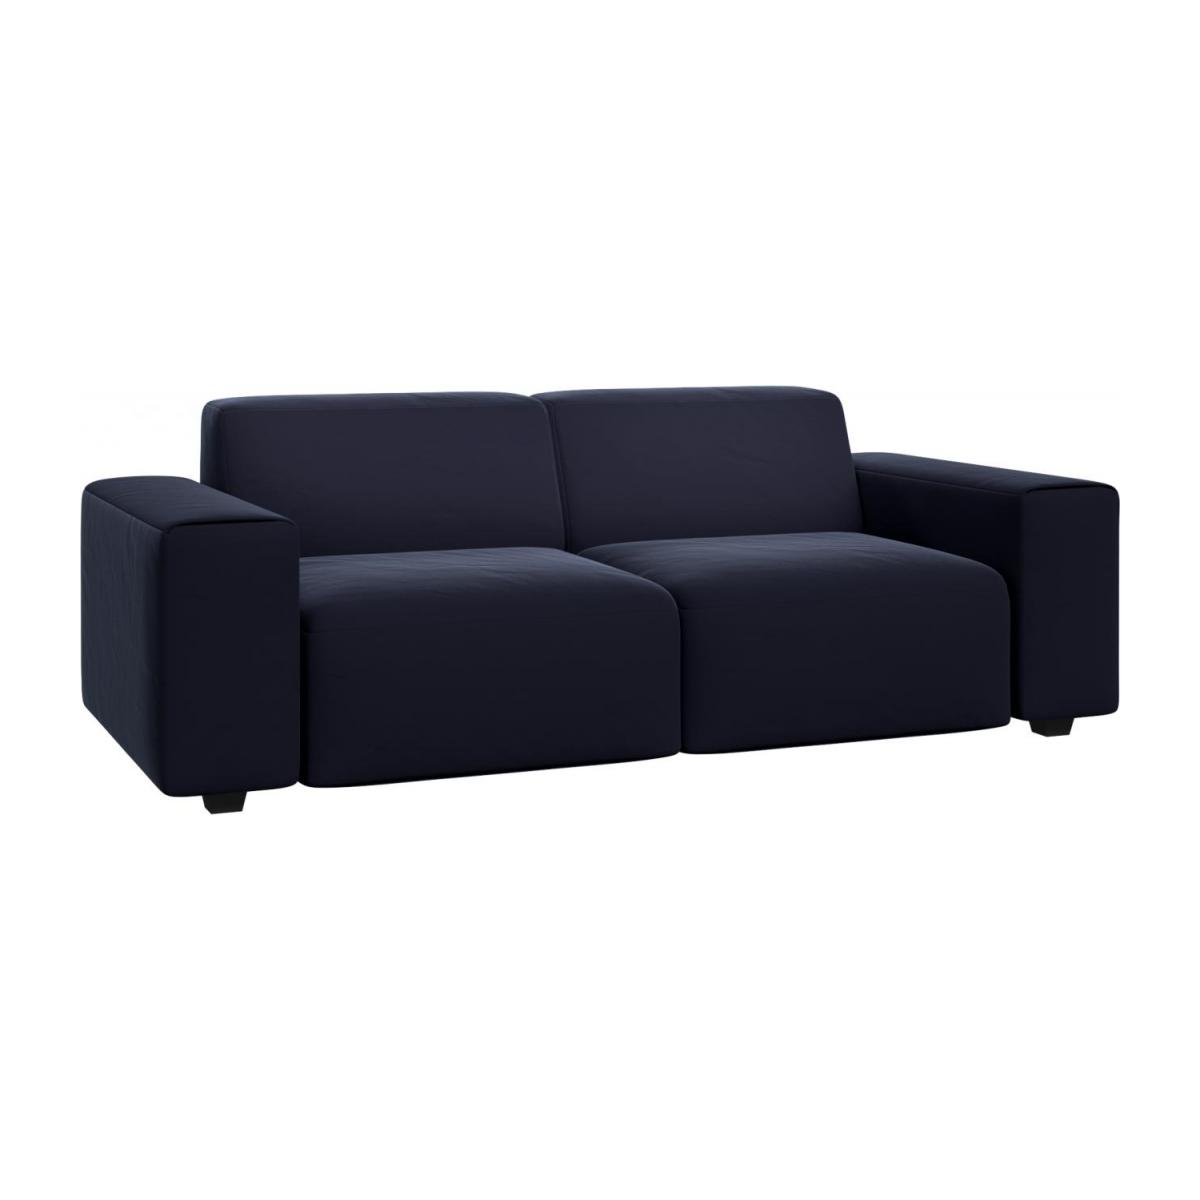 3 seater sofa in Super Velvet fabric, dark blue n°1